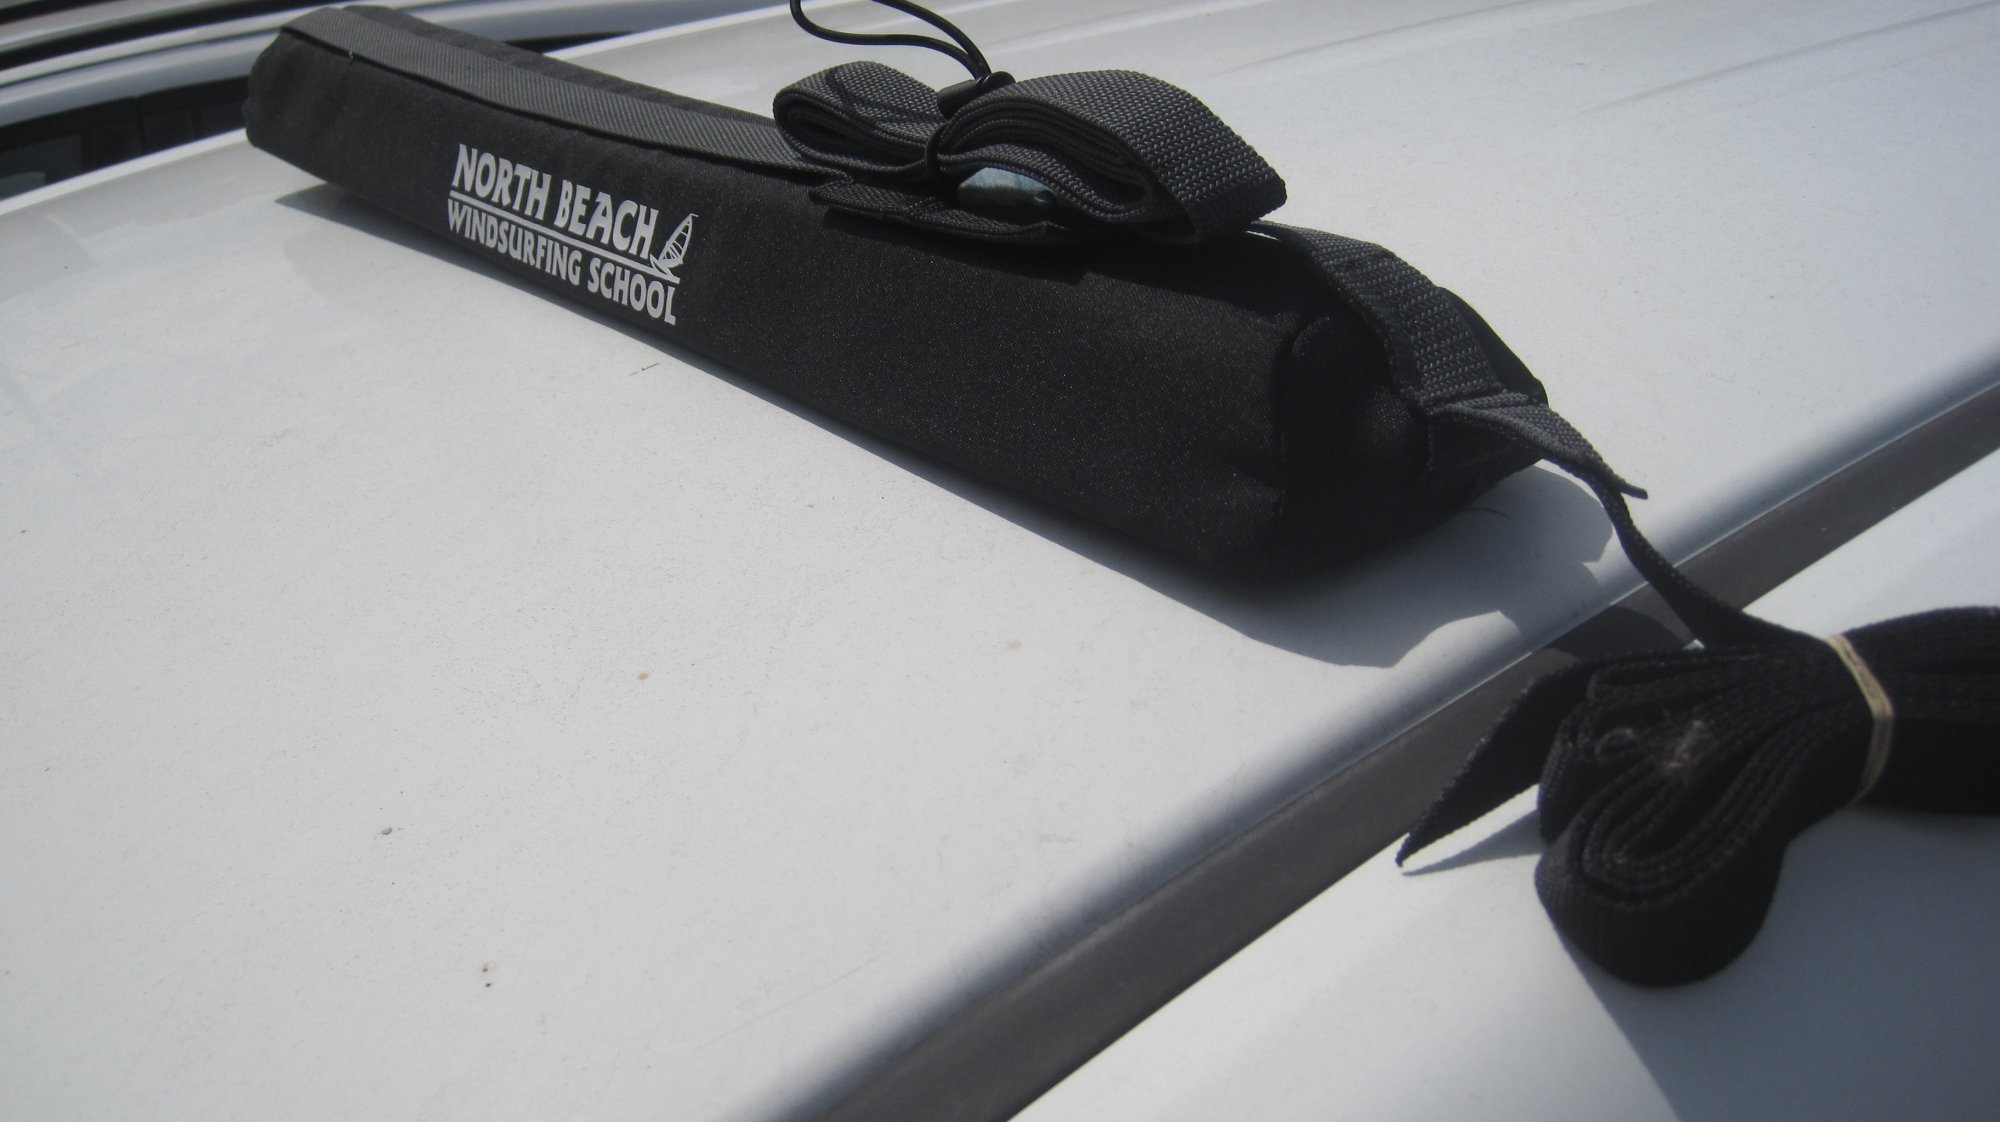 North Beach Quick Strap 'Soft' Roof Racks